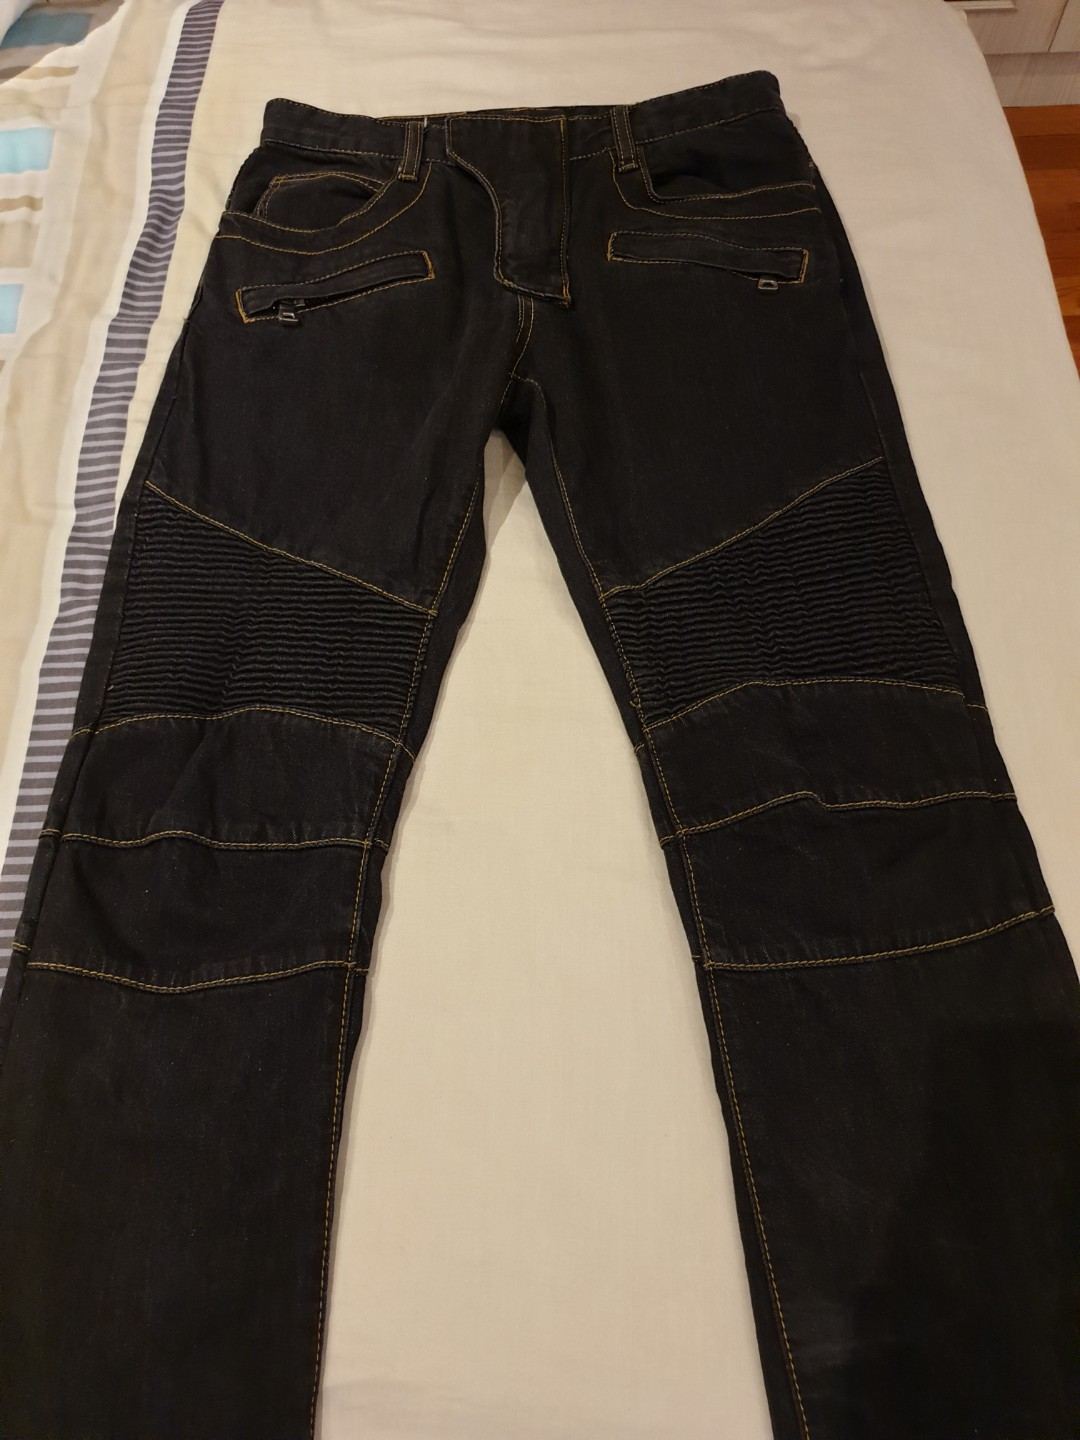 ac1a92fe Authentic Balmain Jeans, Men's Fashion, Clothes, Bottoms on Carousell